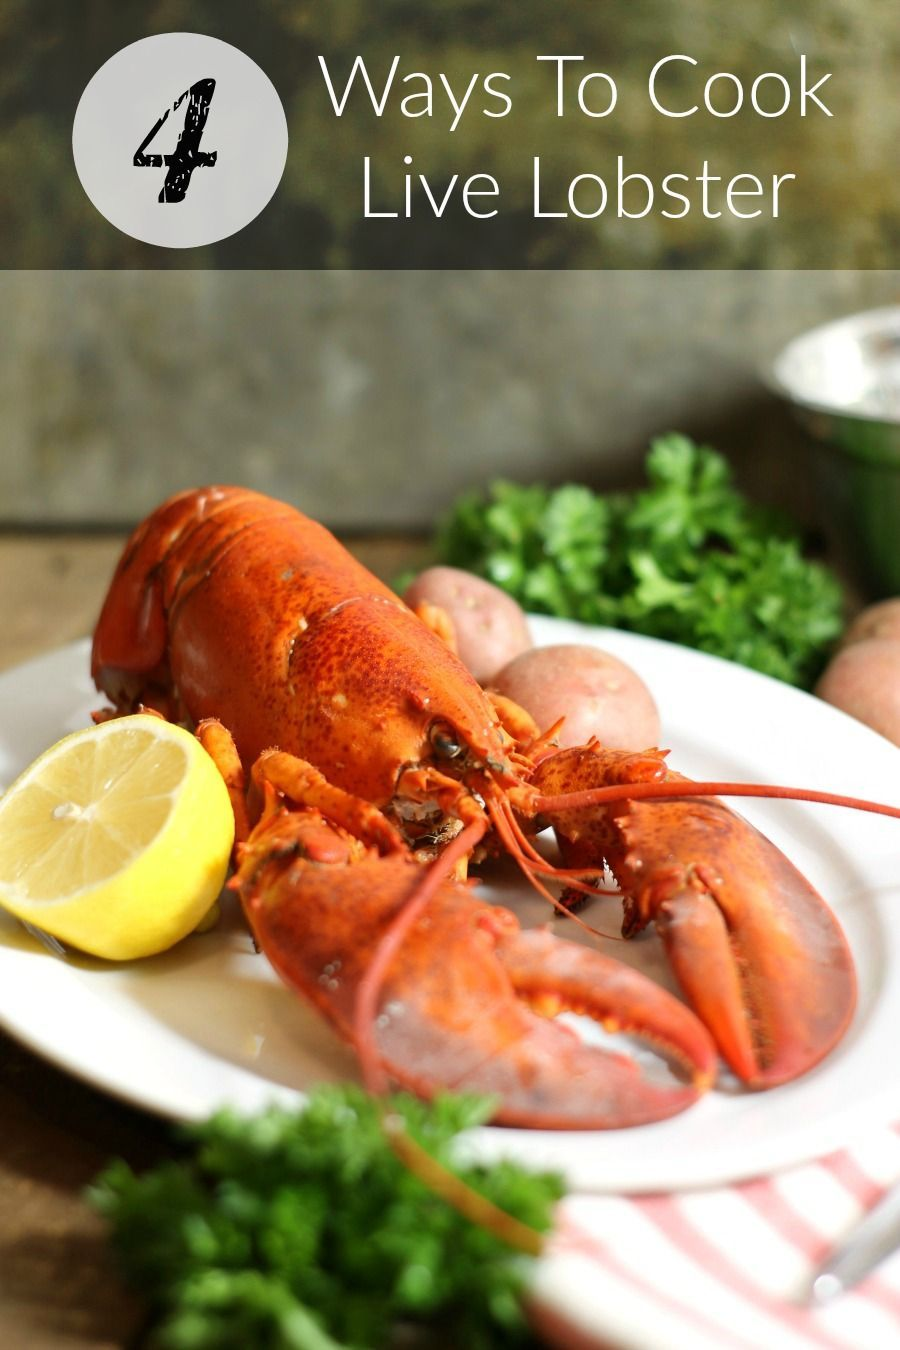 How To Cook Live Lobster images